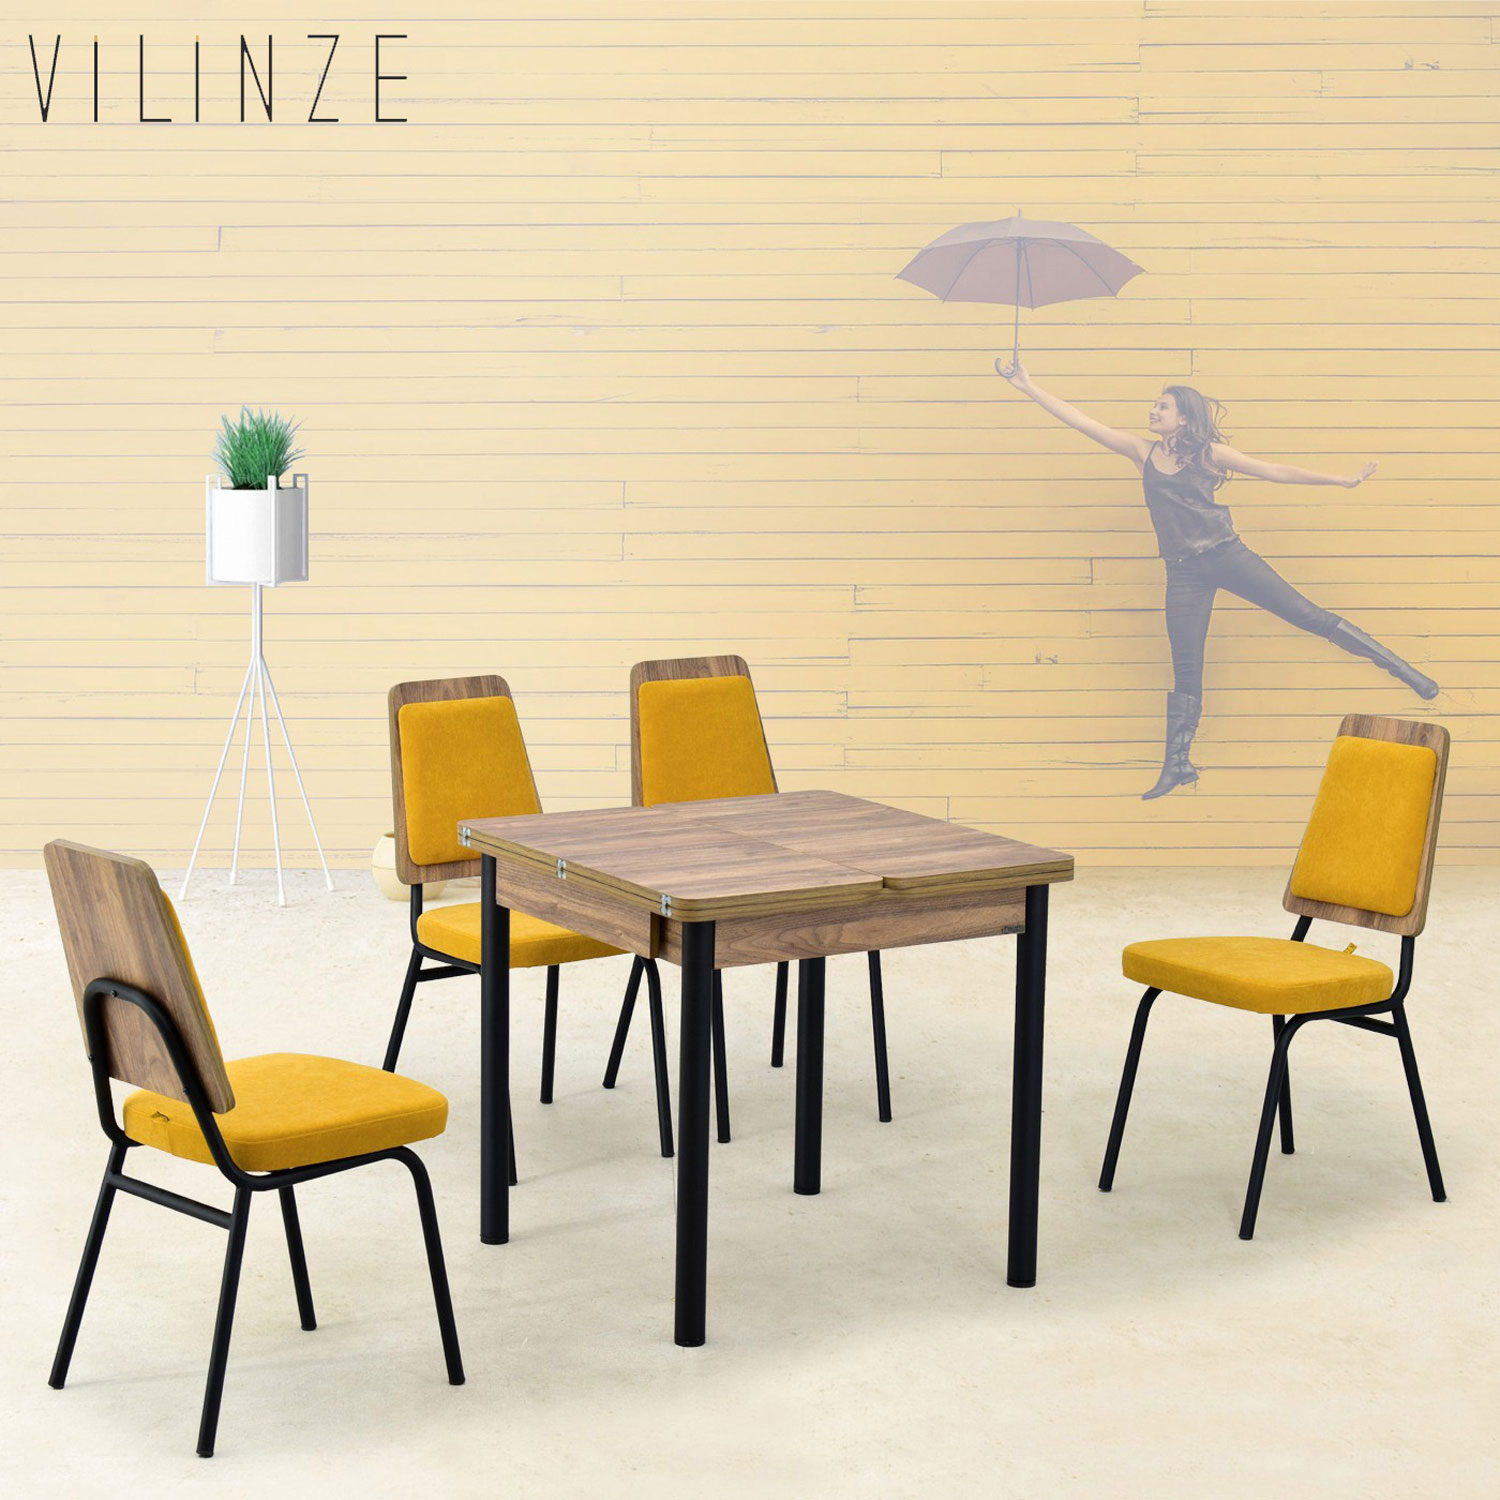 Mavens Tv Hq Styling A Creative Workspace Erika Brechtel Comfortable Living Room Chairs Small Dining Table Home